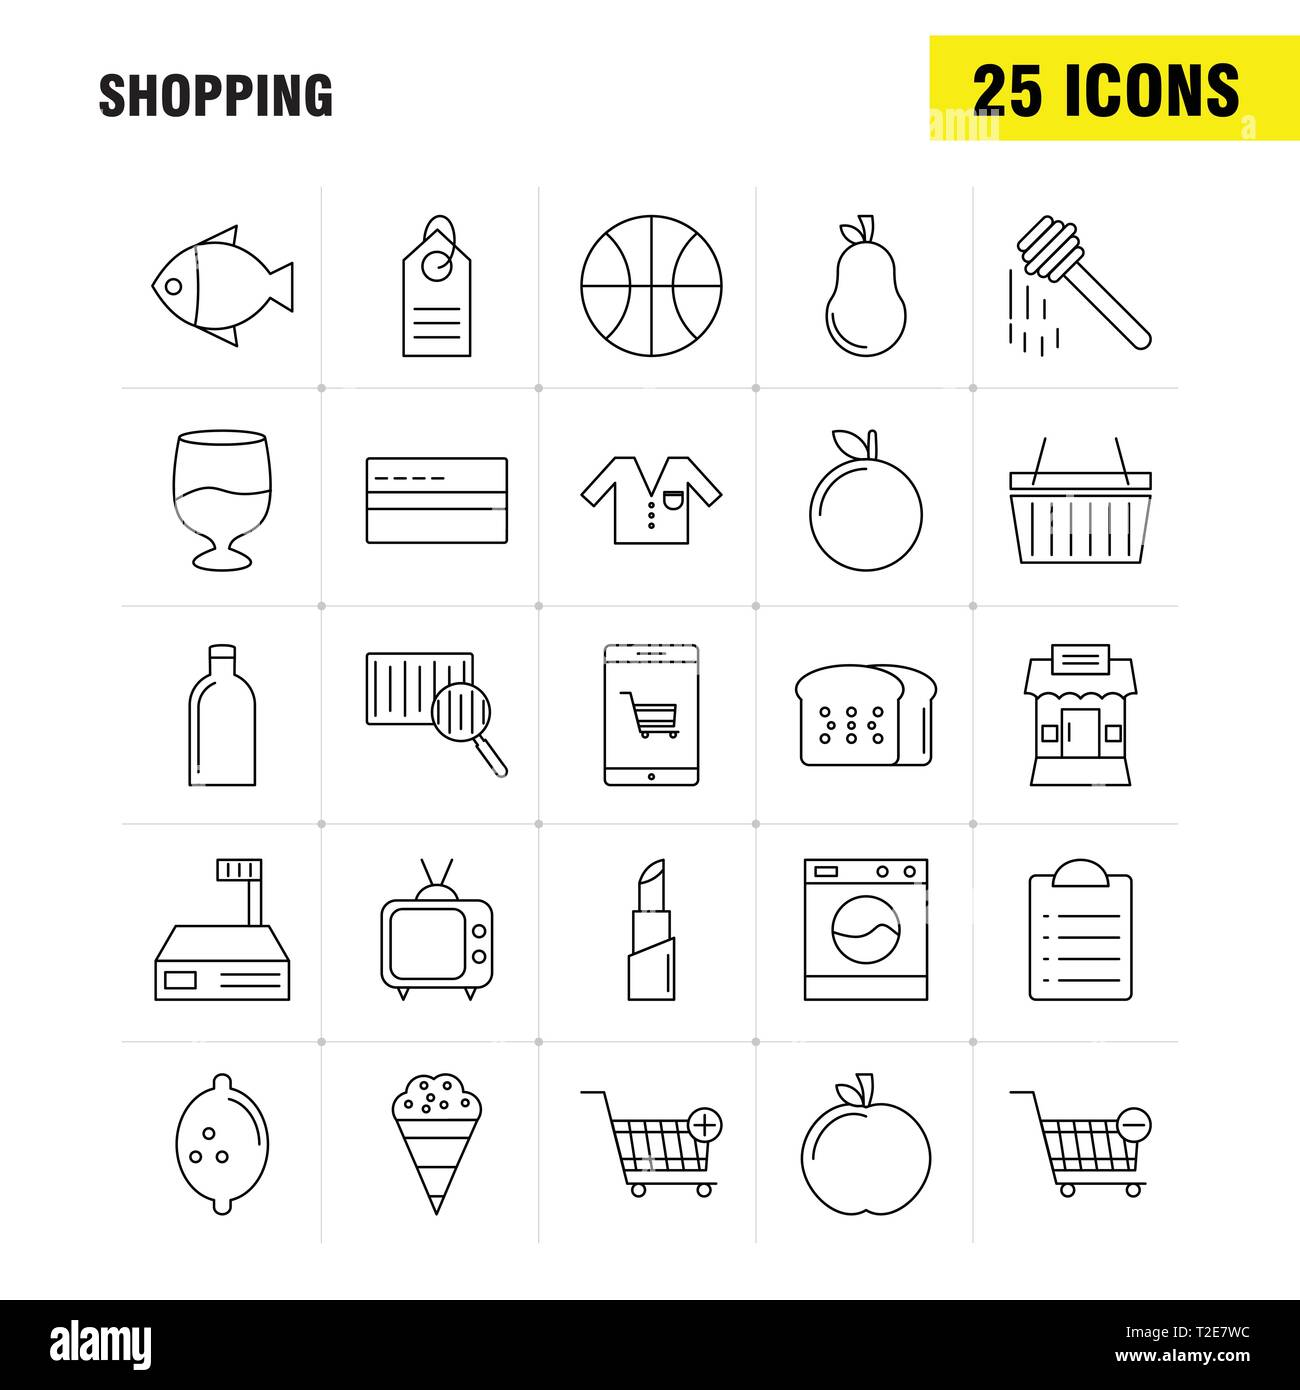 Shopping Line Icon for Web, Print and Mobile UX/UI Kit. Such as: Cart, Trolley, Buy, Add, Cart, Trolley, Buy, Remove, Pictogram Pack. - Vector - Stock Image